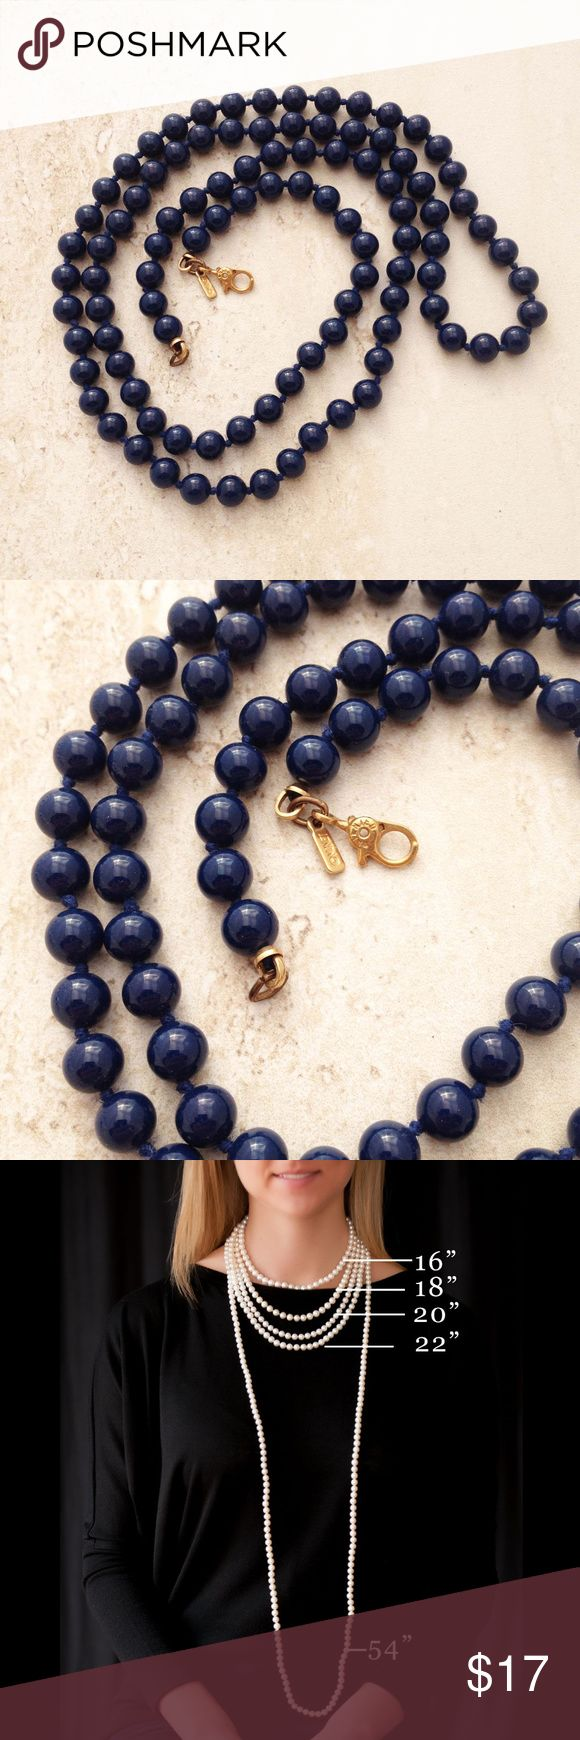 "Vintage Blue Glass Bead Necklace by Monet Simple and elegant, dark blue glass bead necklace.  27"" long with individually knotted, 1/4"" beads abd gold tone lobster clasp.  Marked Monet (c).  From the 60's-70's. Monet Jewelry Necklaces"